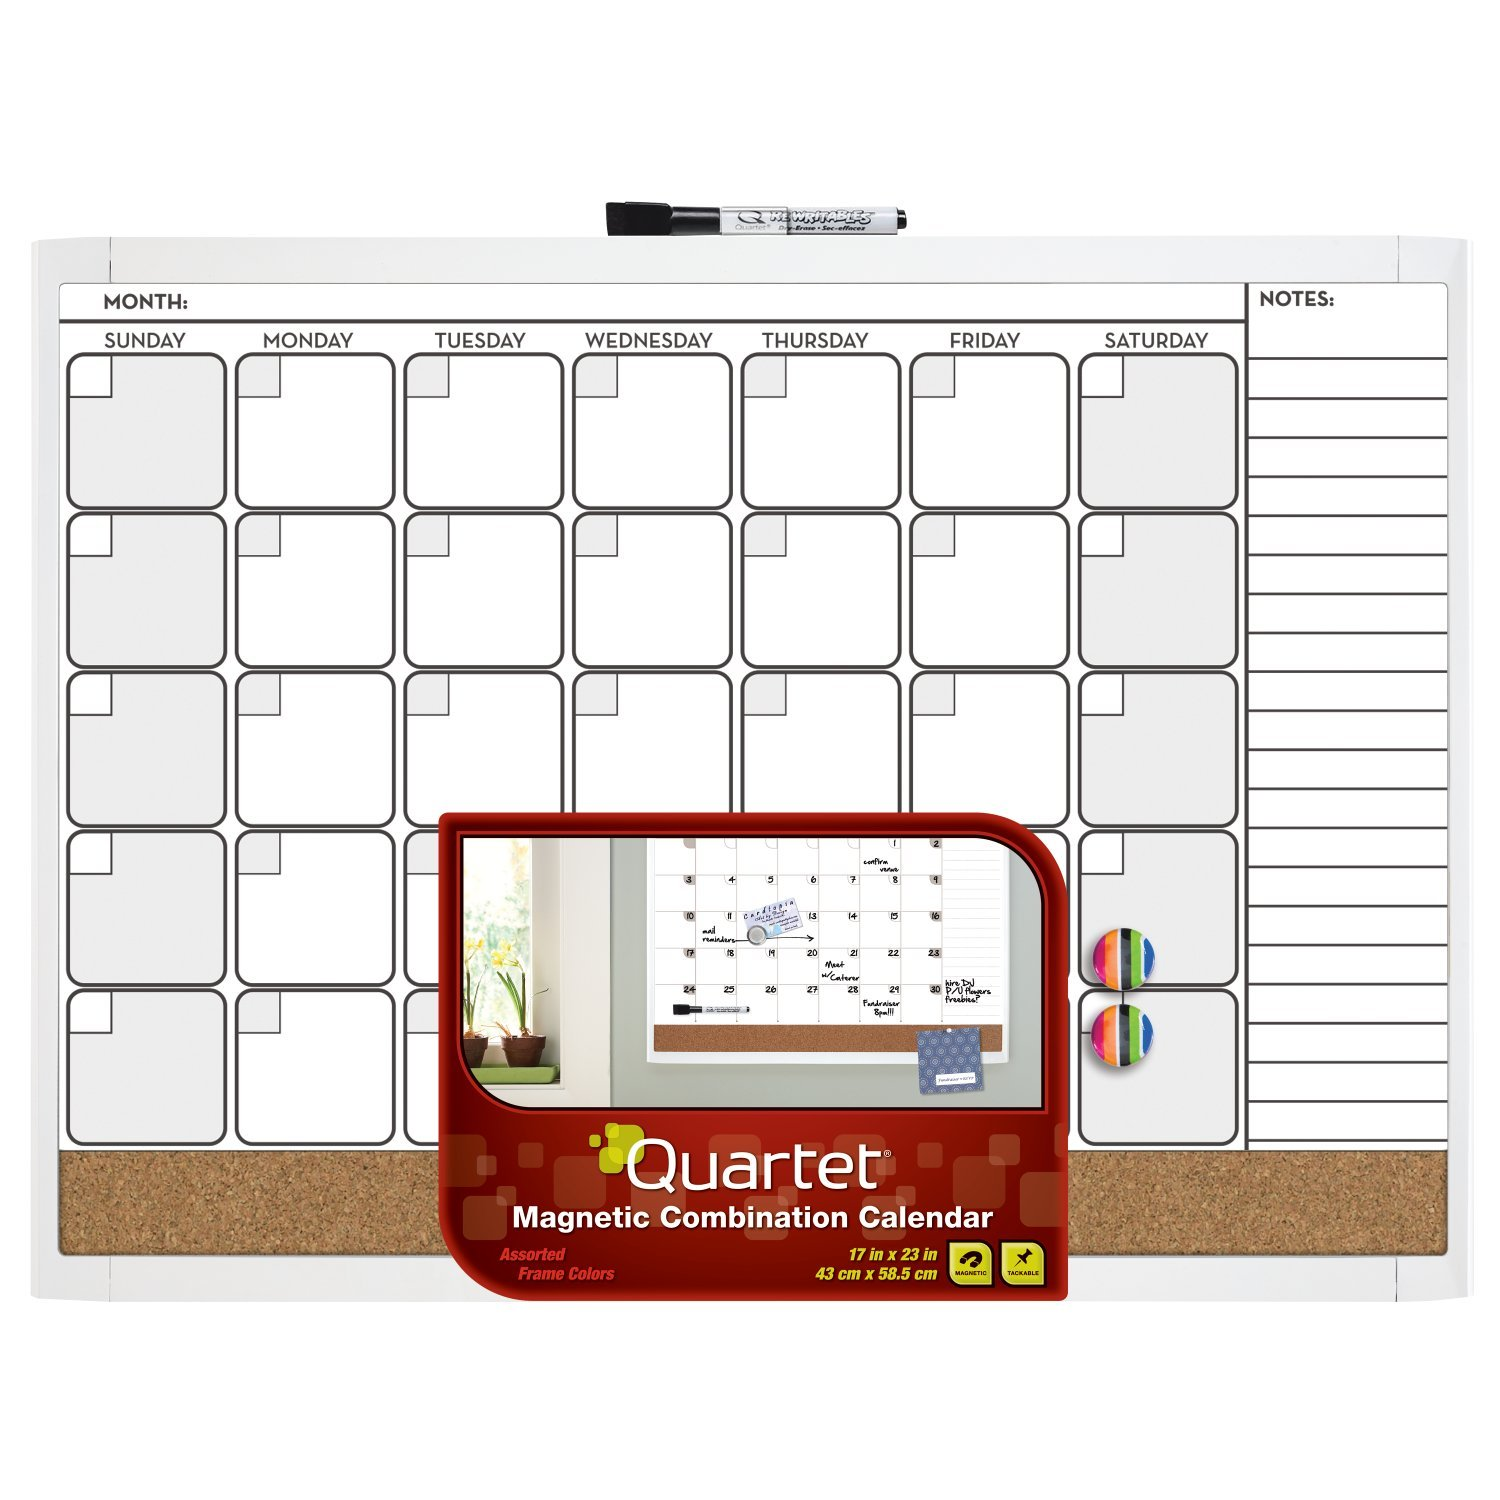 Dry Erase Calendar Magnetic : Quartet magnetic combo calendar board inches dry